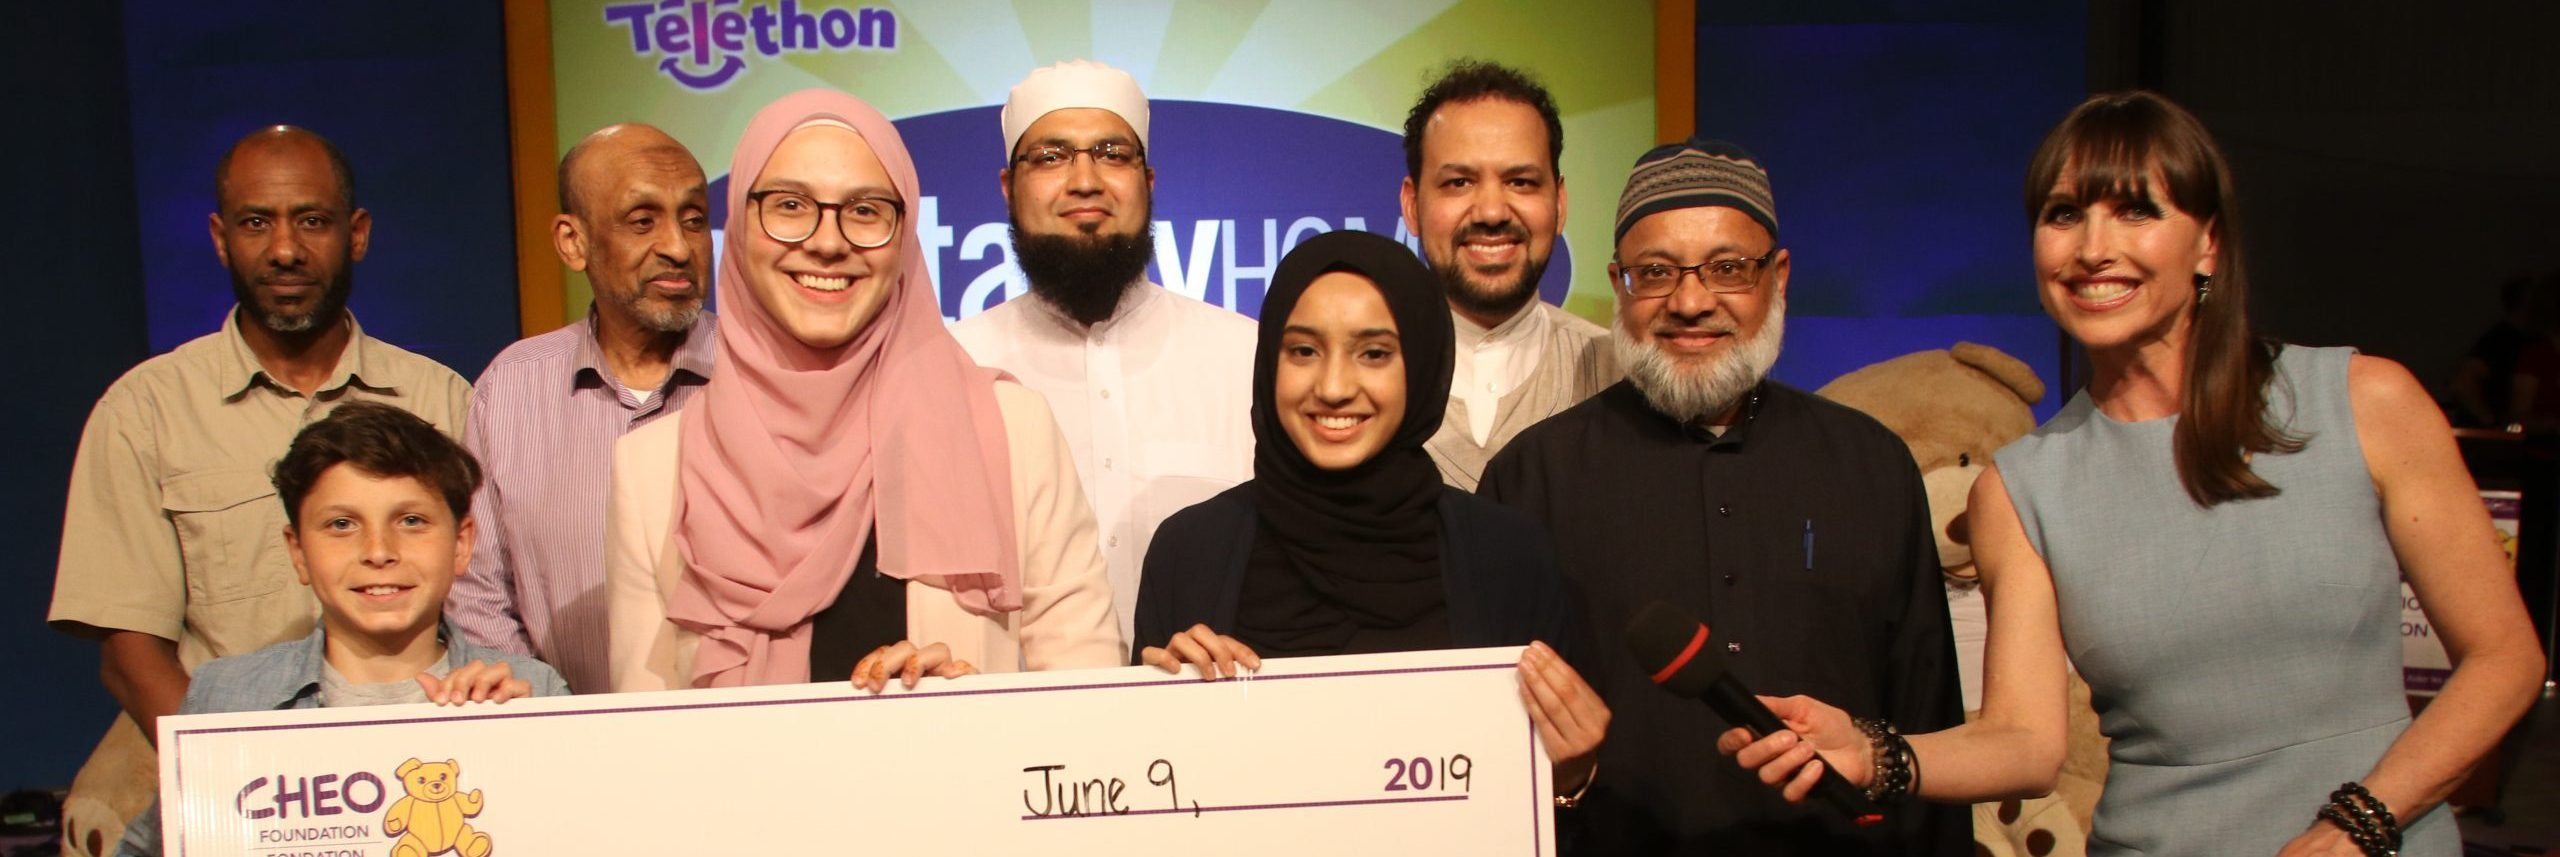 A group of people hold a cheque made out to CHEO